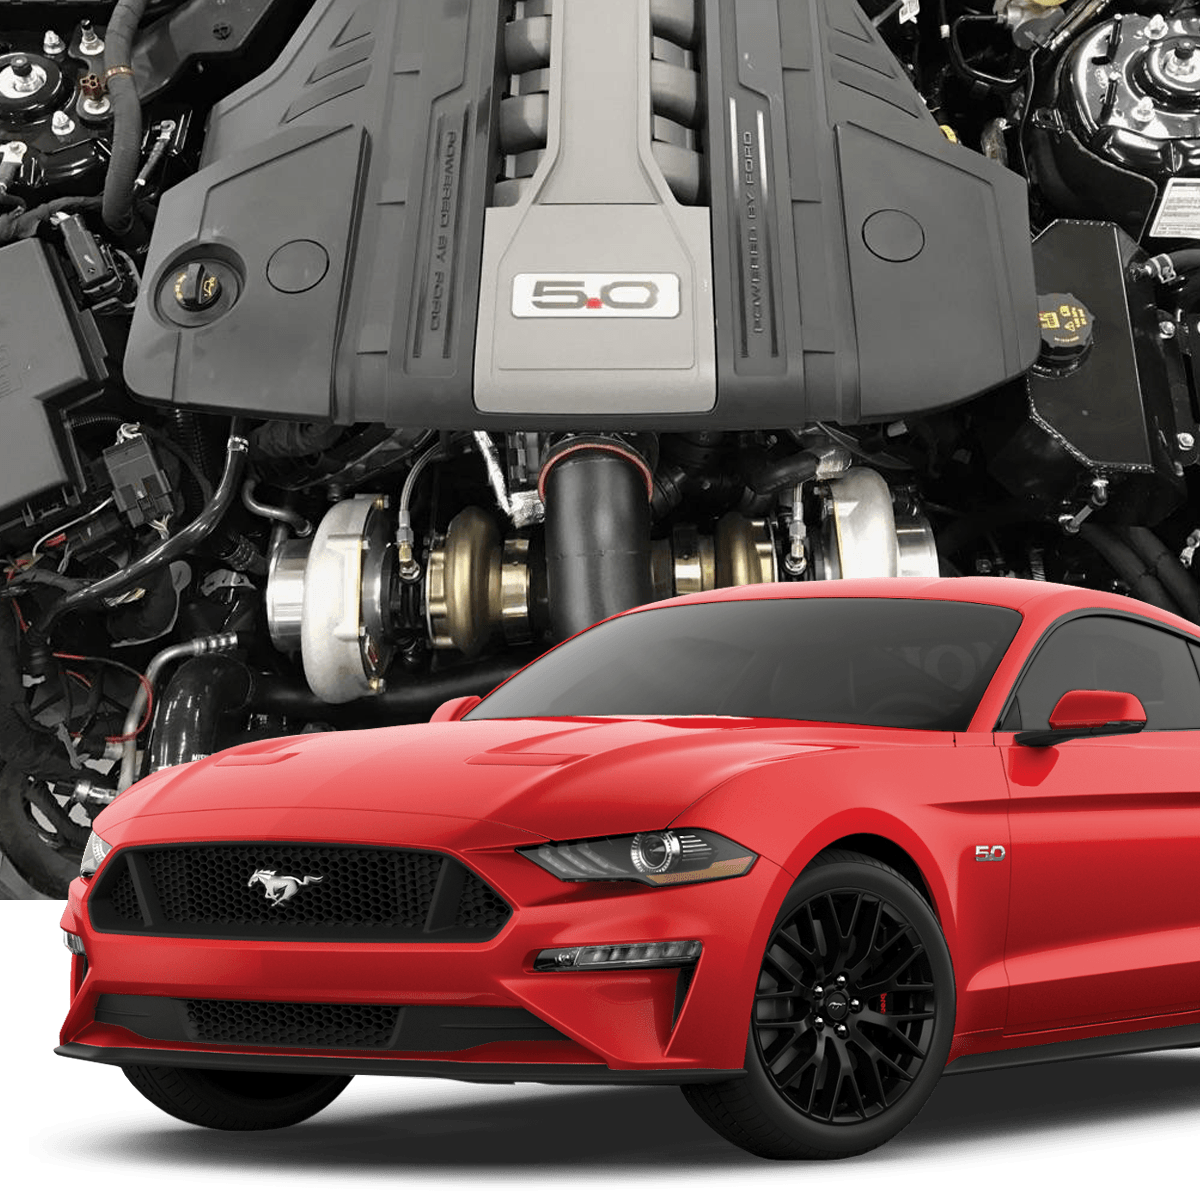 Mustang V6 Turbo Kits: 2018 Mustang GT Hellion Twin Turbo Tuner System